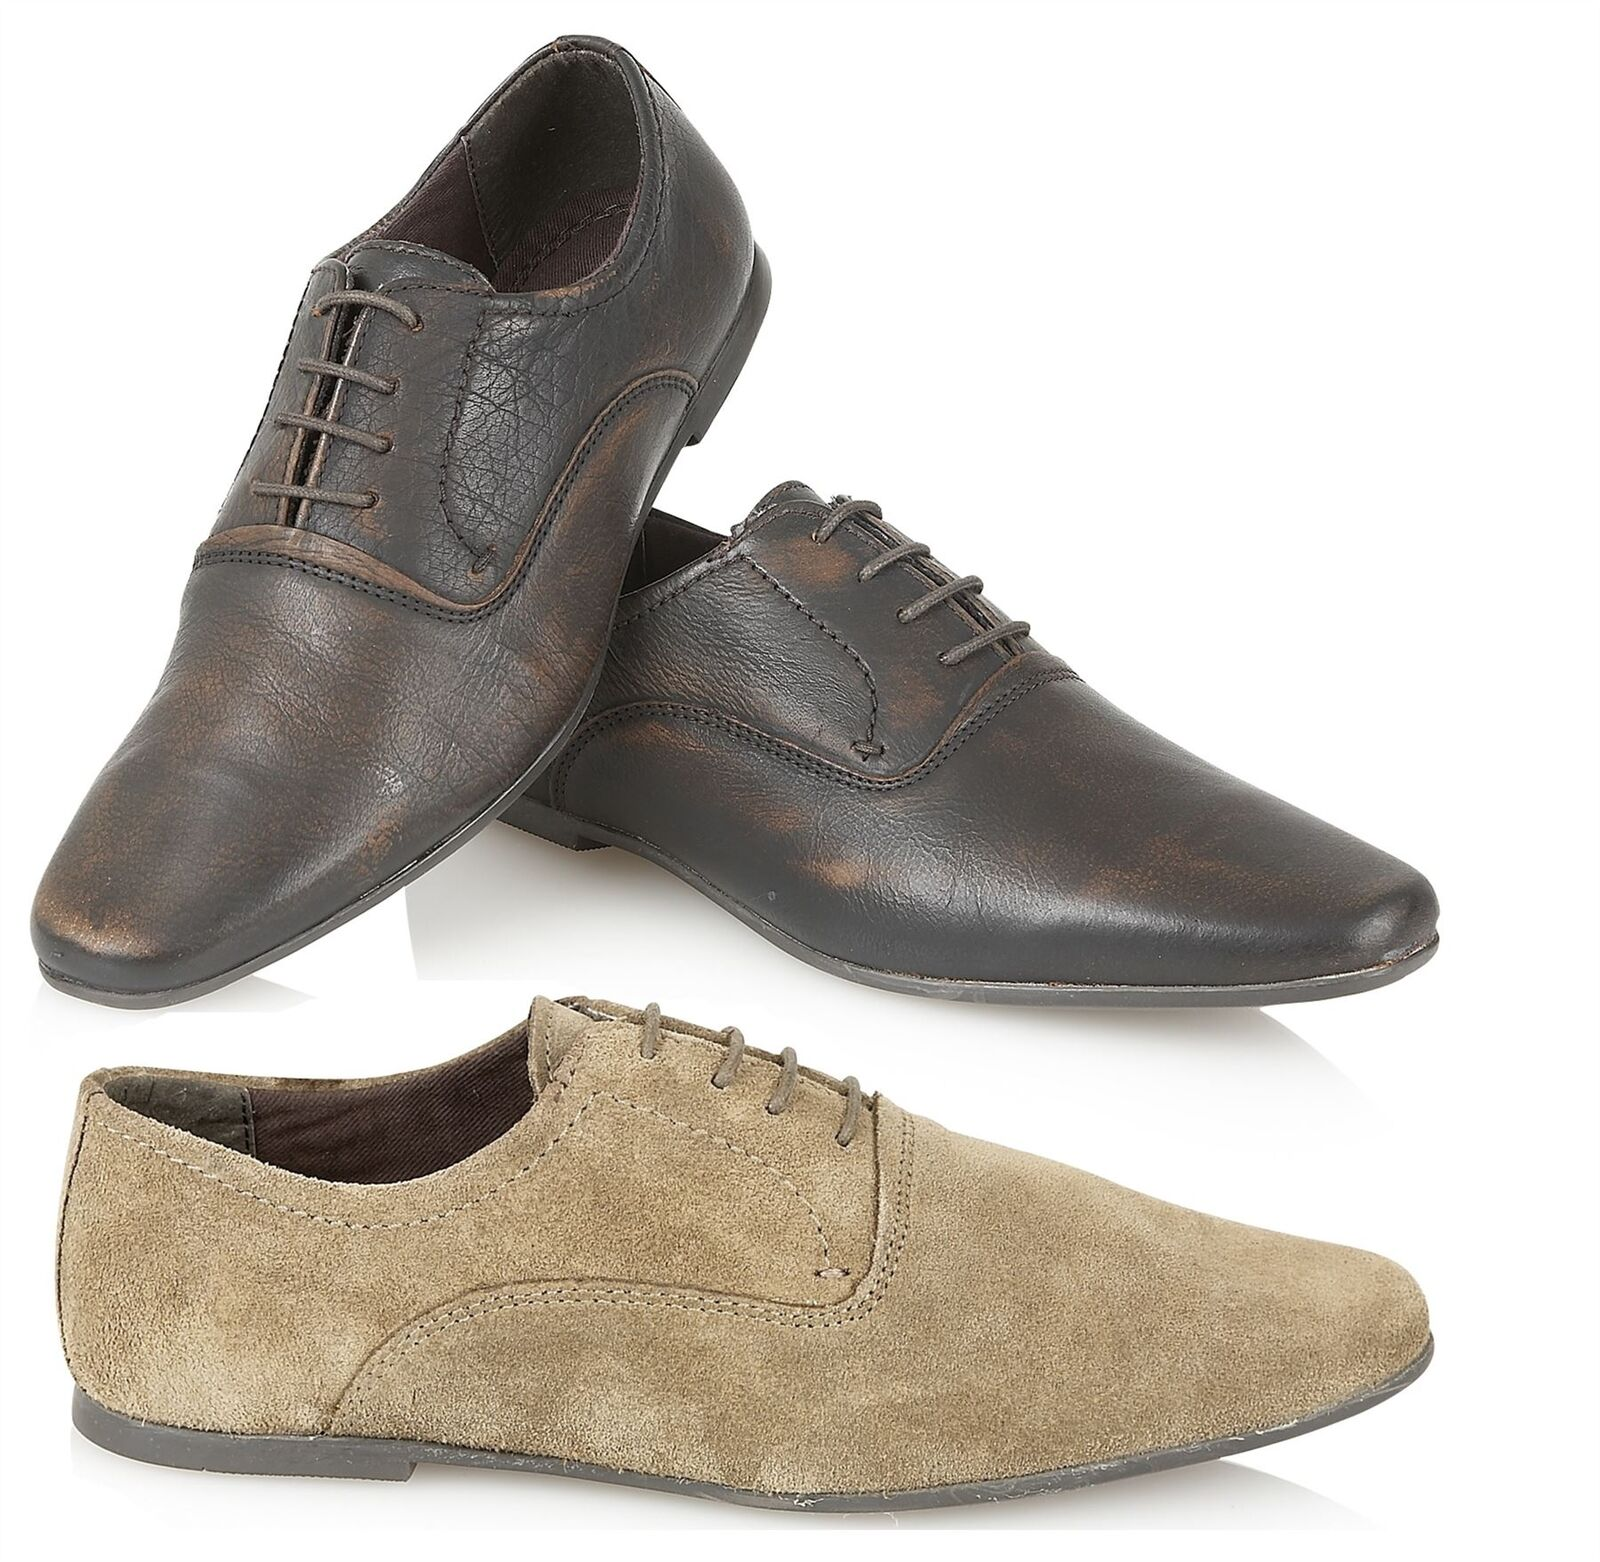 Boys Real Leather Distressed Formal Lace up shoes with Variable sizes